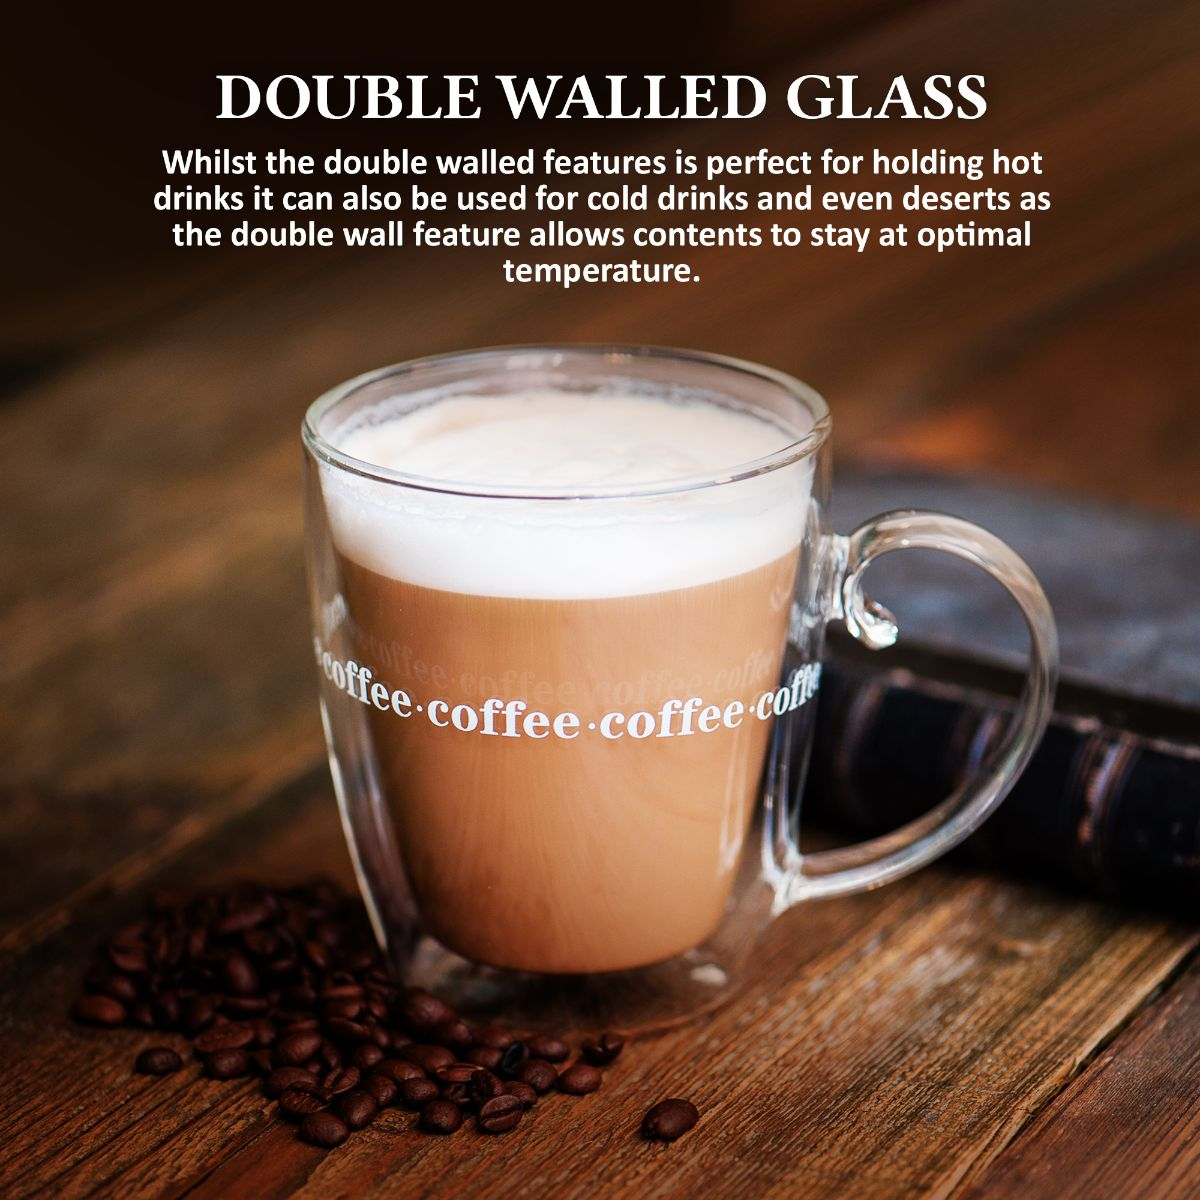 Details about Double Wall Design Glass Tea Coffee Cup Heat resistant Clear Thermo Mug 500ML UK